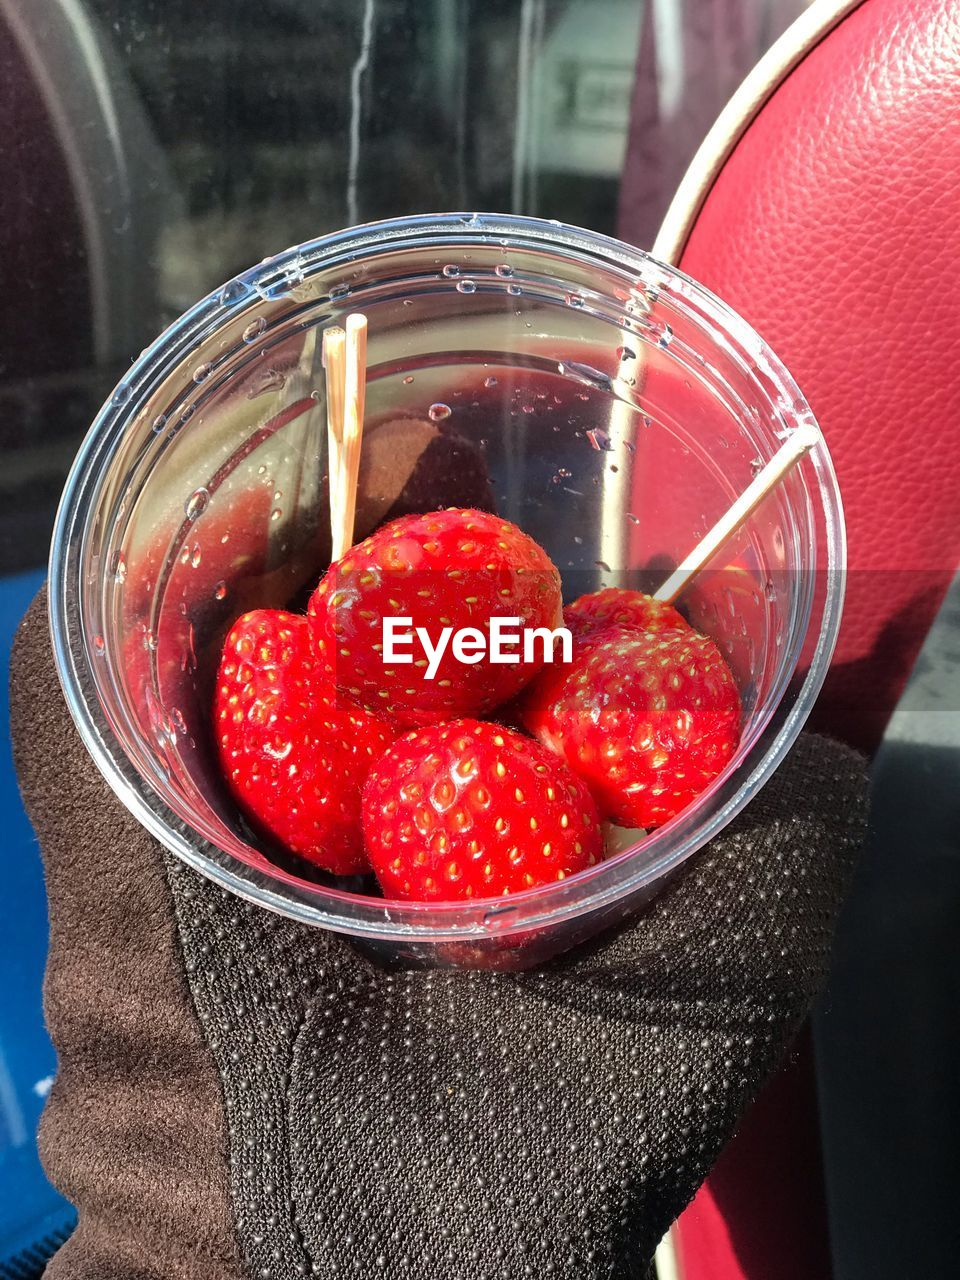 CLOSE-UP OF STRAWBERRIES ON GLASS